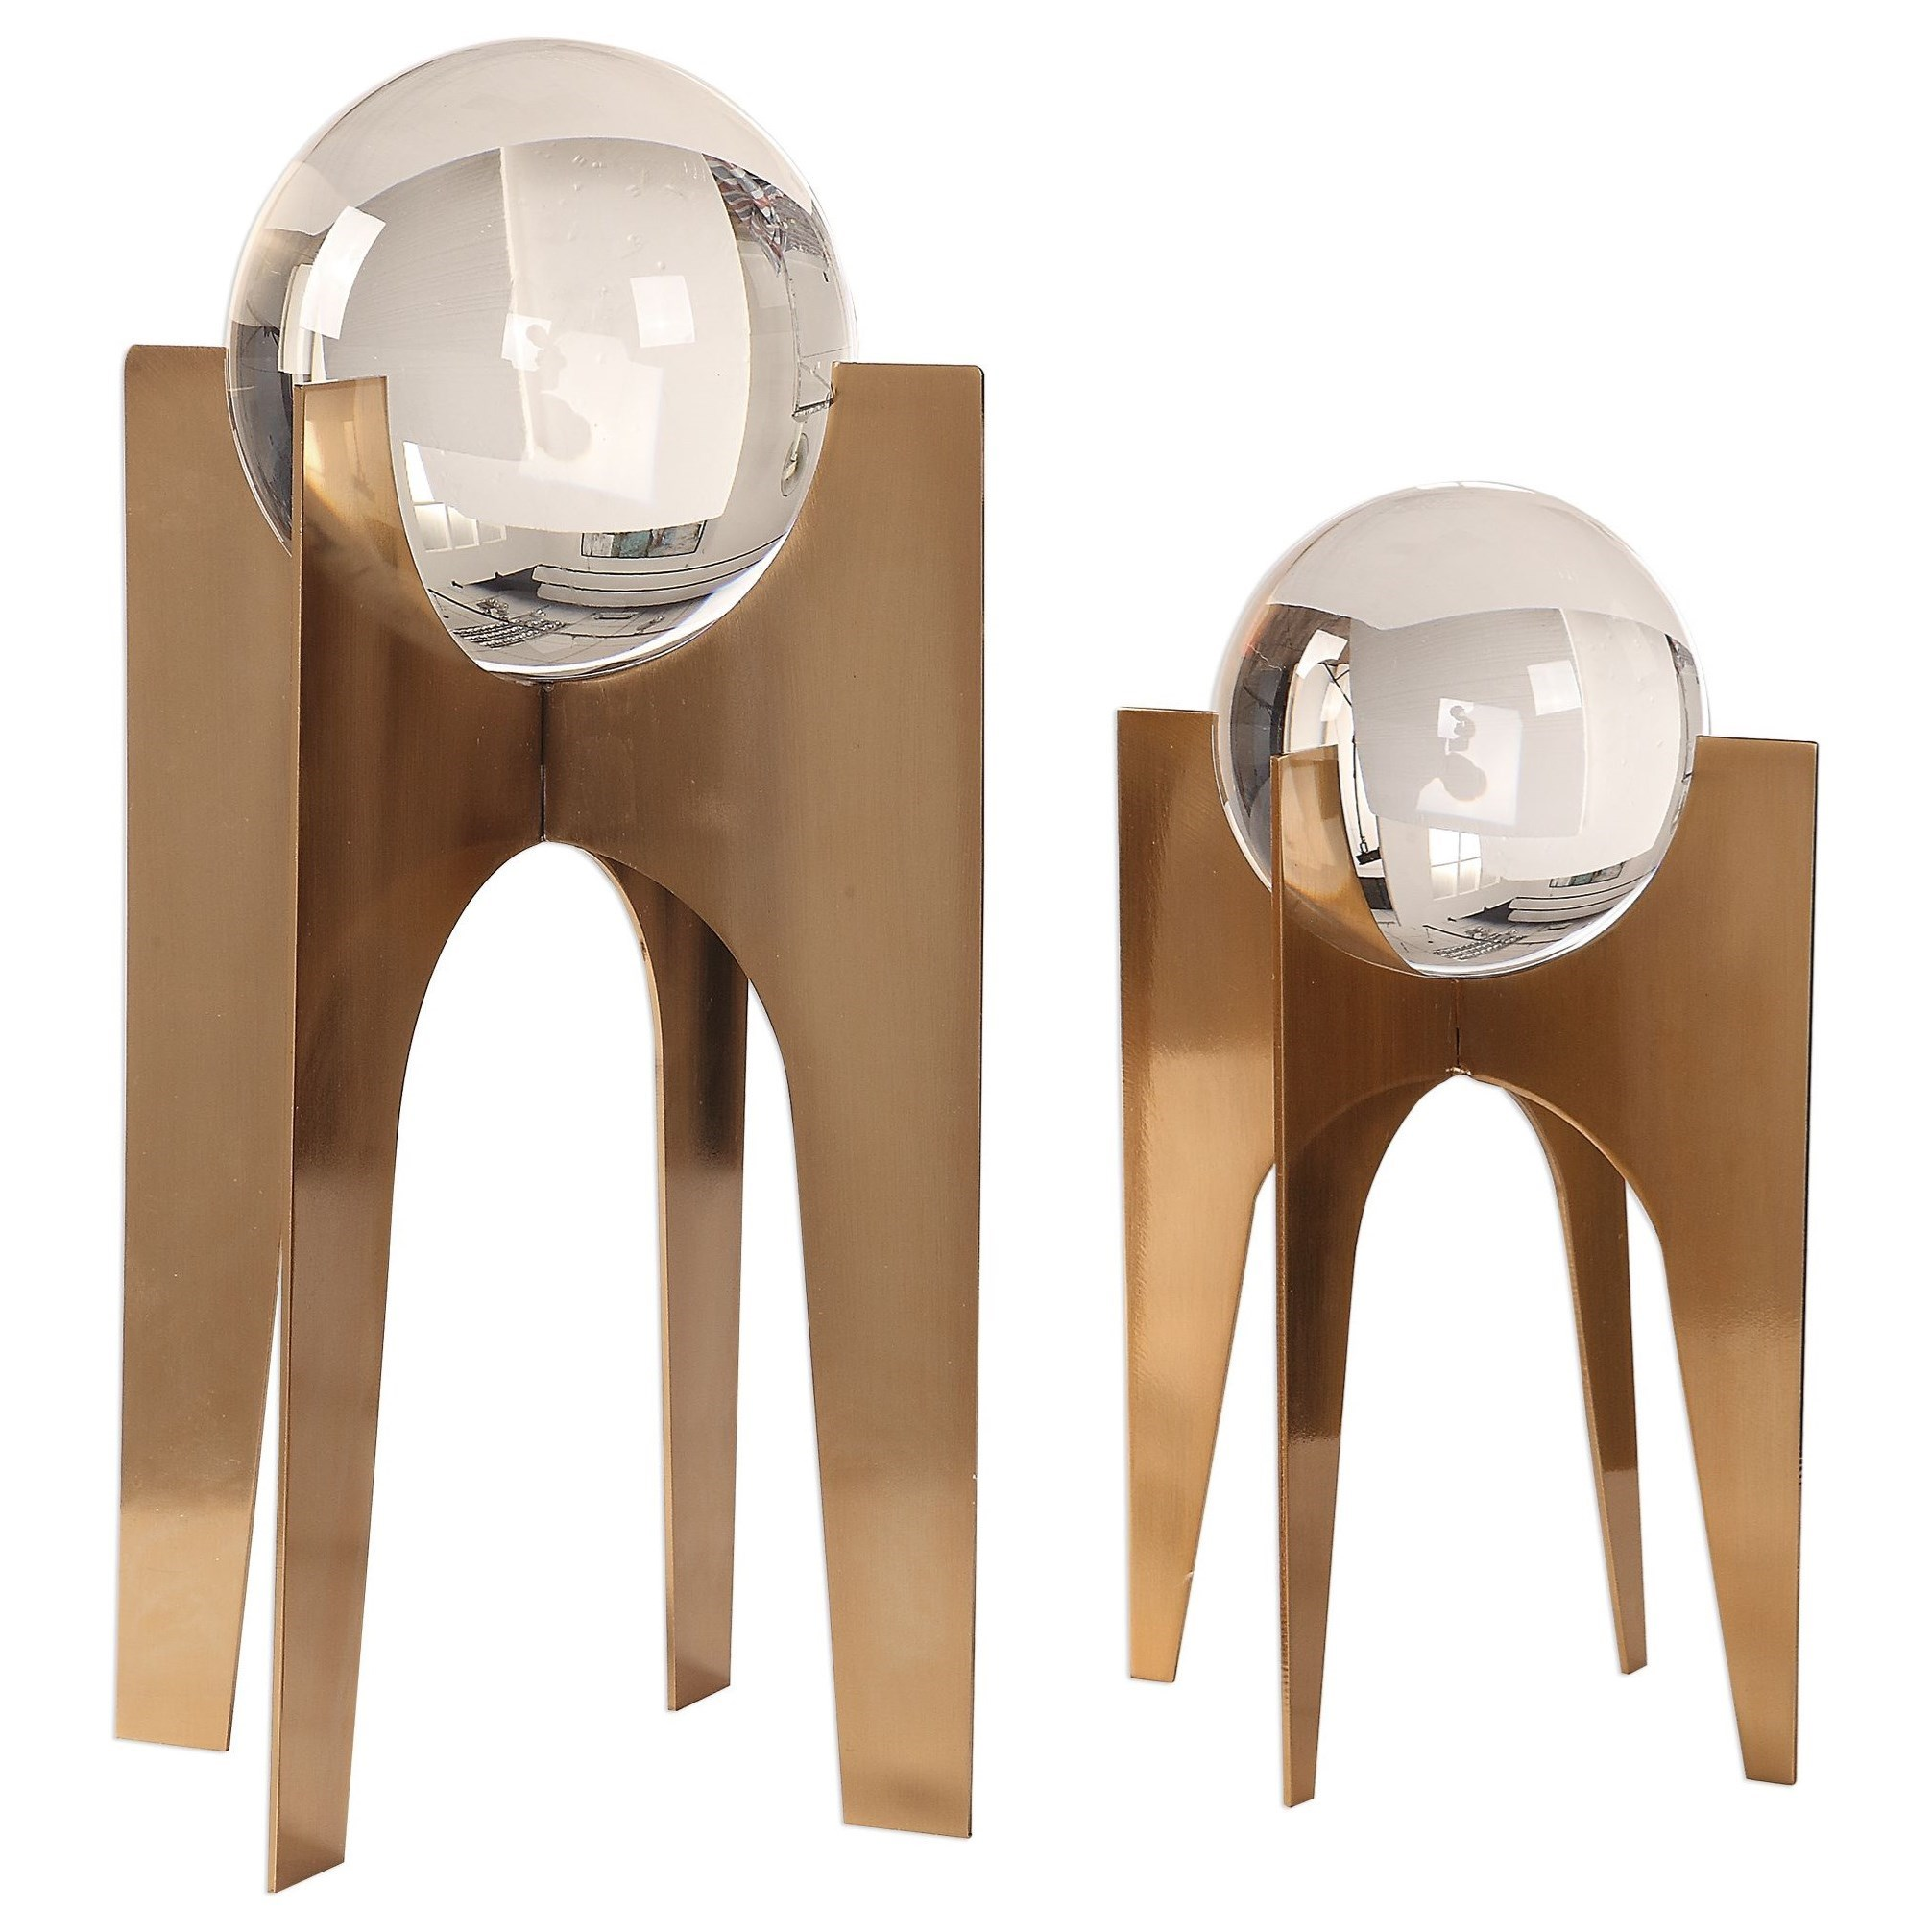 Accessories - Statues and Figurines Ellianna Crystal Spheres, S/2 by Uttermost at Mueller Furniture